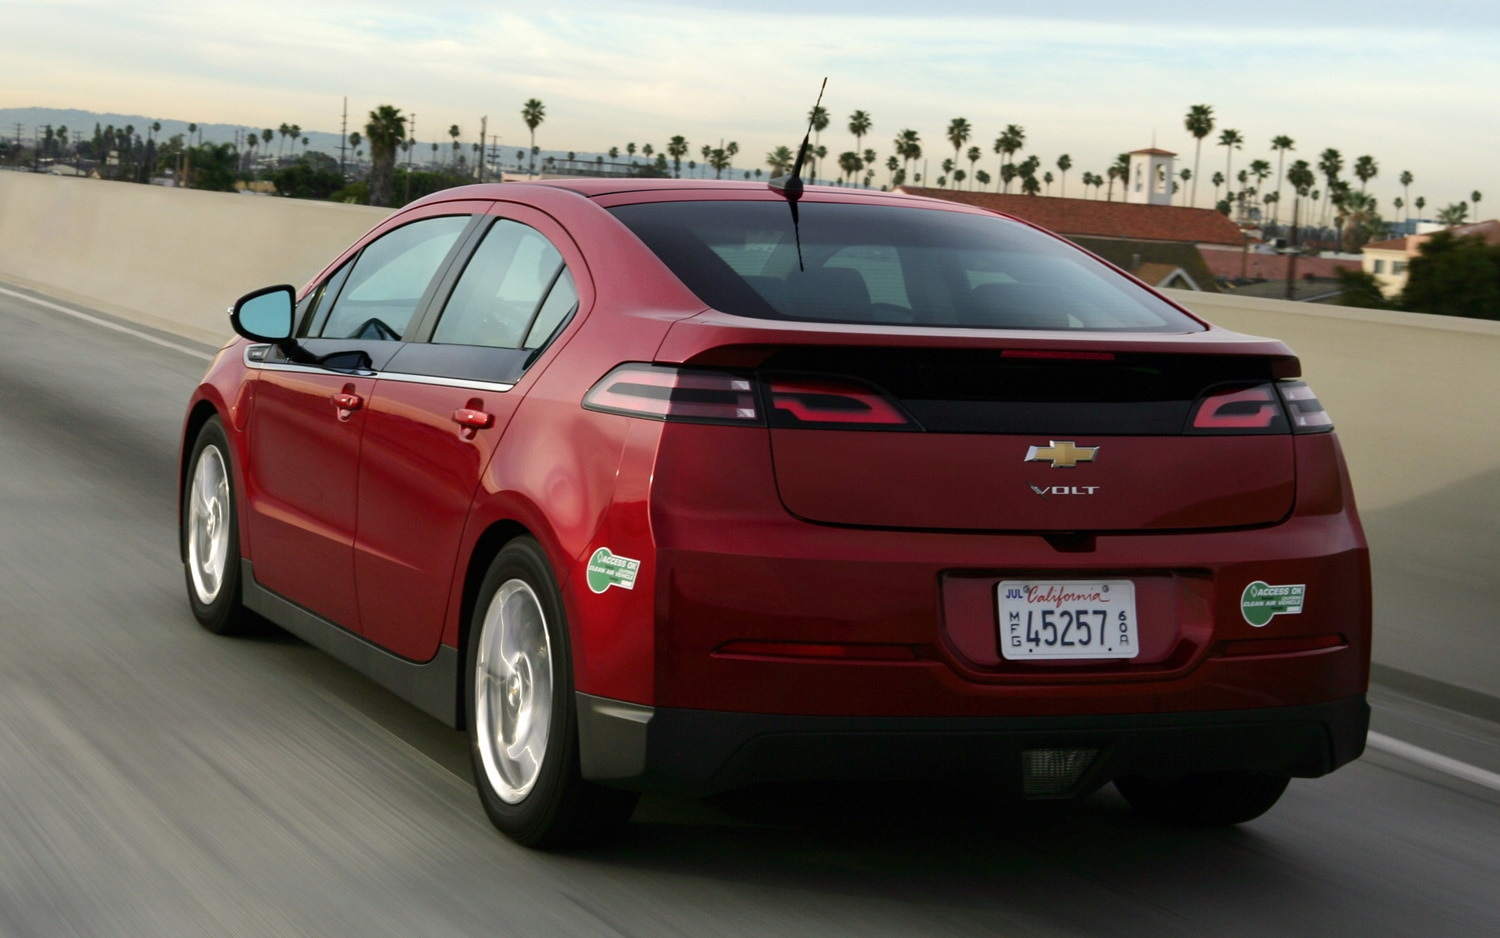 consumer reports says chevrolet volt owners most satisfied. Black Bedroom Furniture Sets. Home Design Ideas